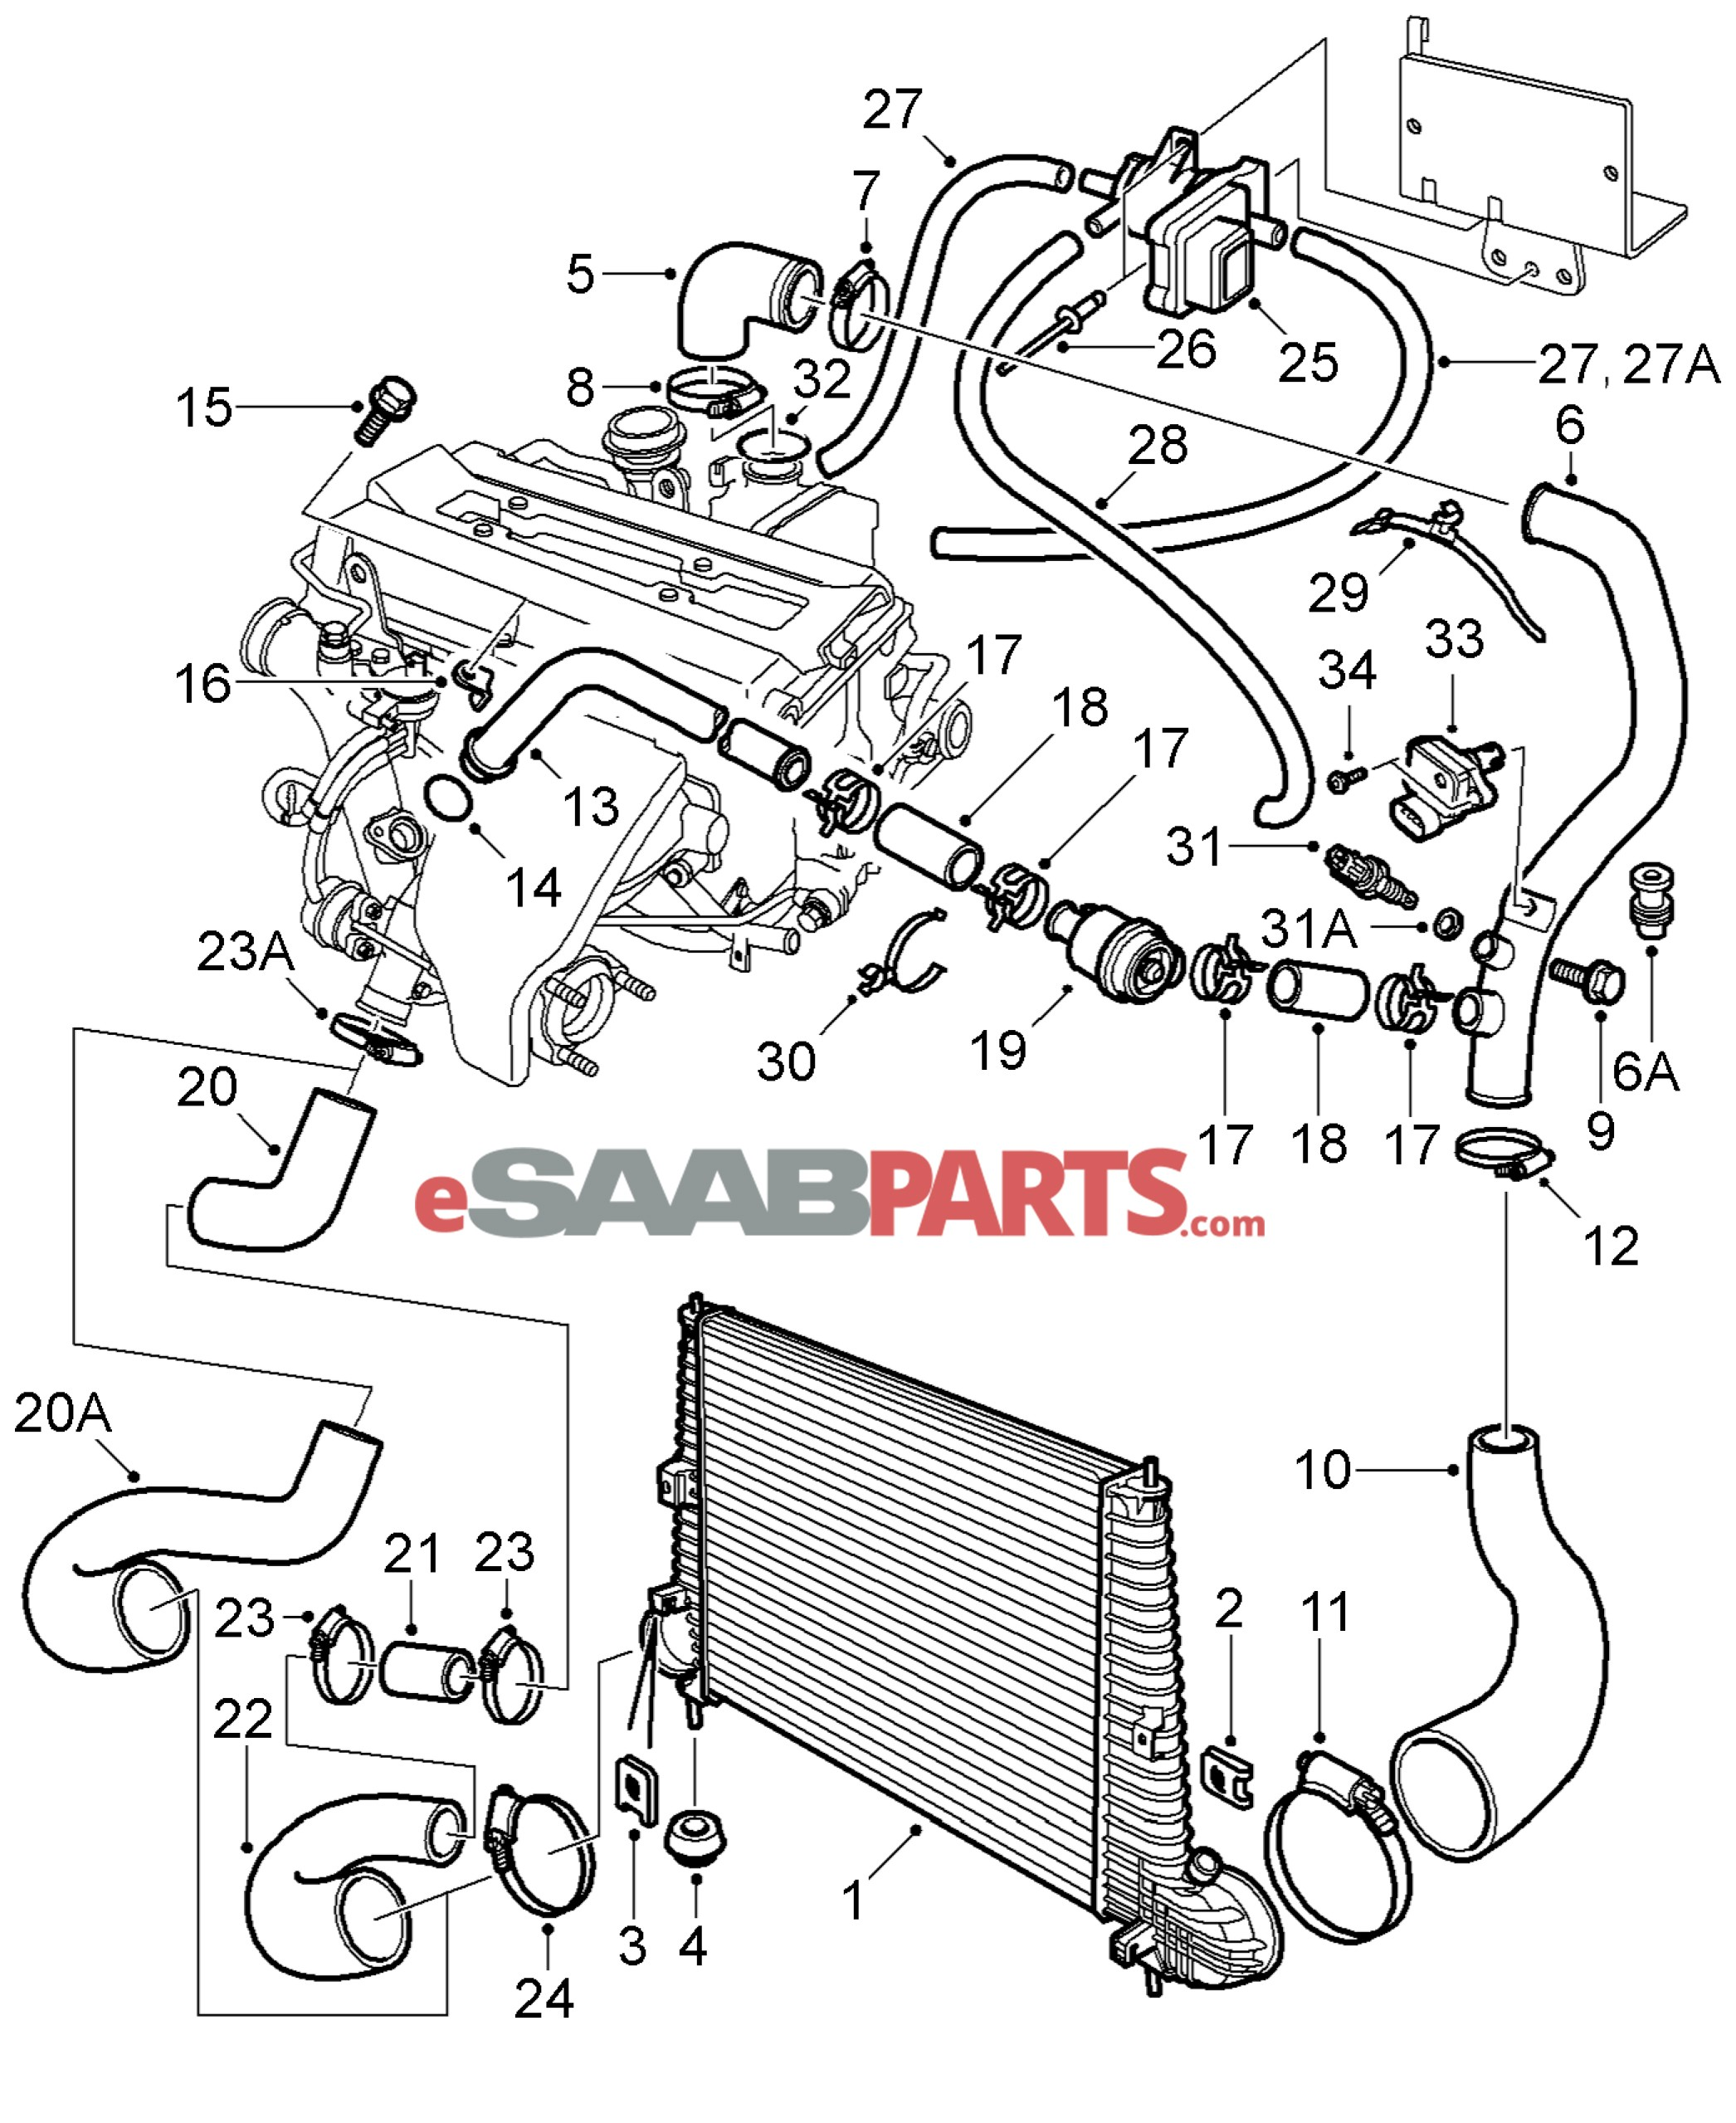 Land Rover Discovery 3 9 Wiring Diagram Schematics Diagrams 5 V8 Engine Vaccum Radio U2022 Rh Augmently Co 2004